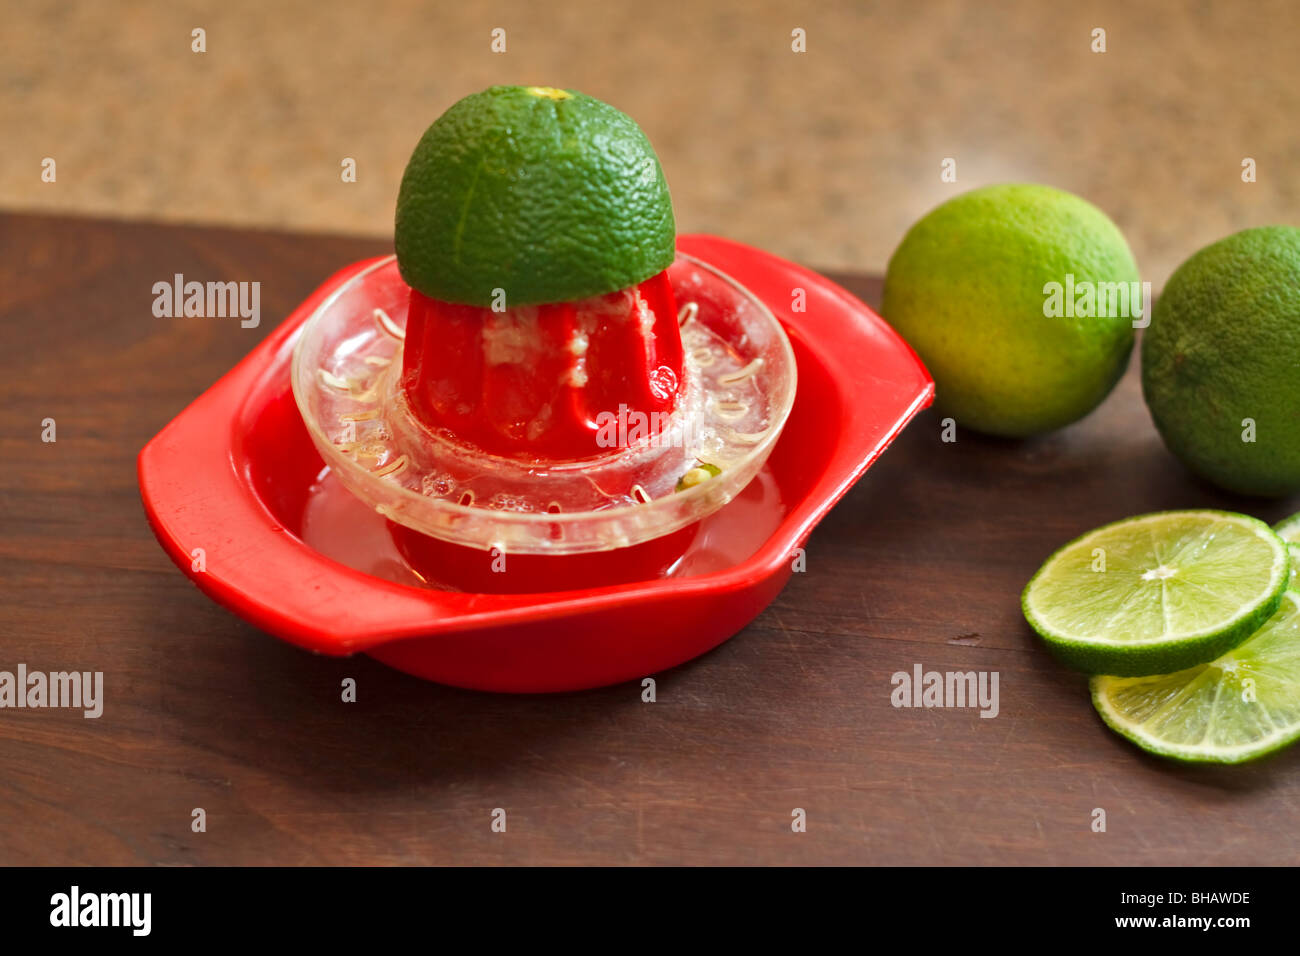 Squeezing limes for juice - Stock Image